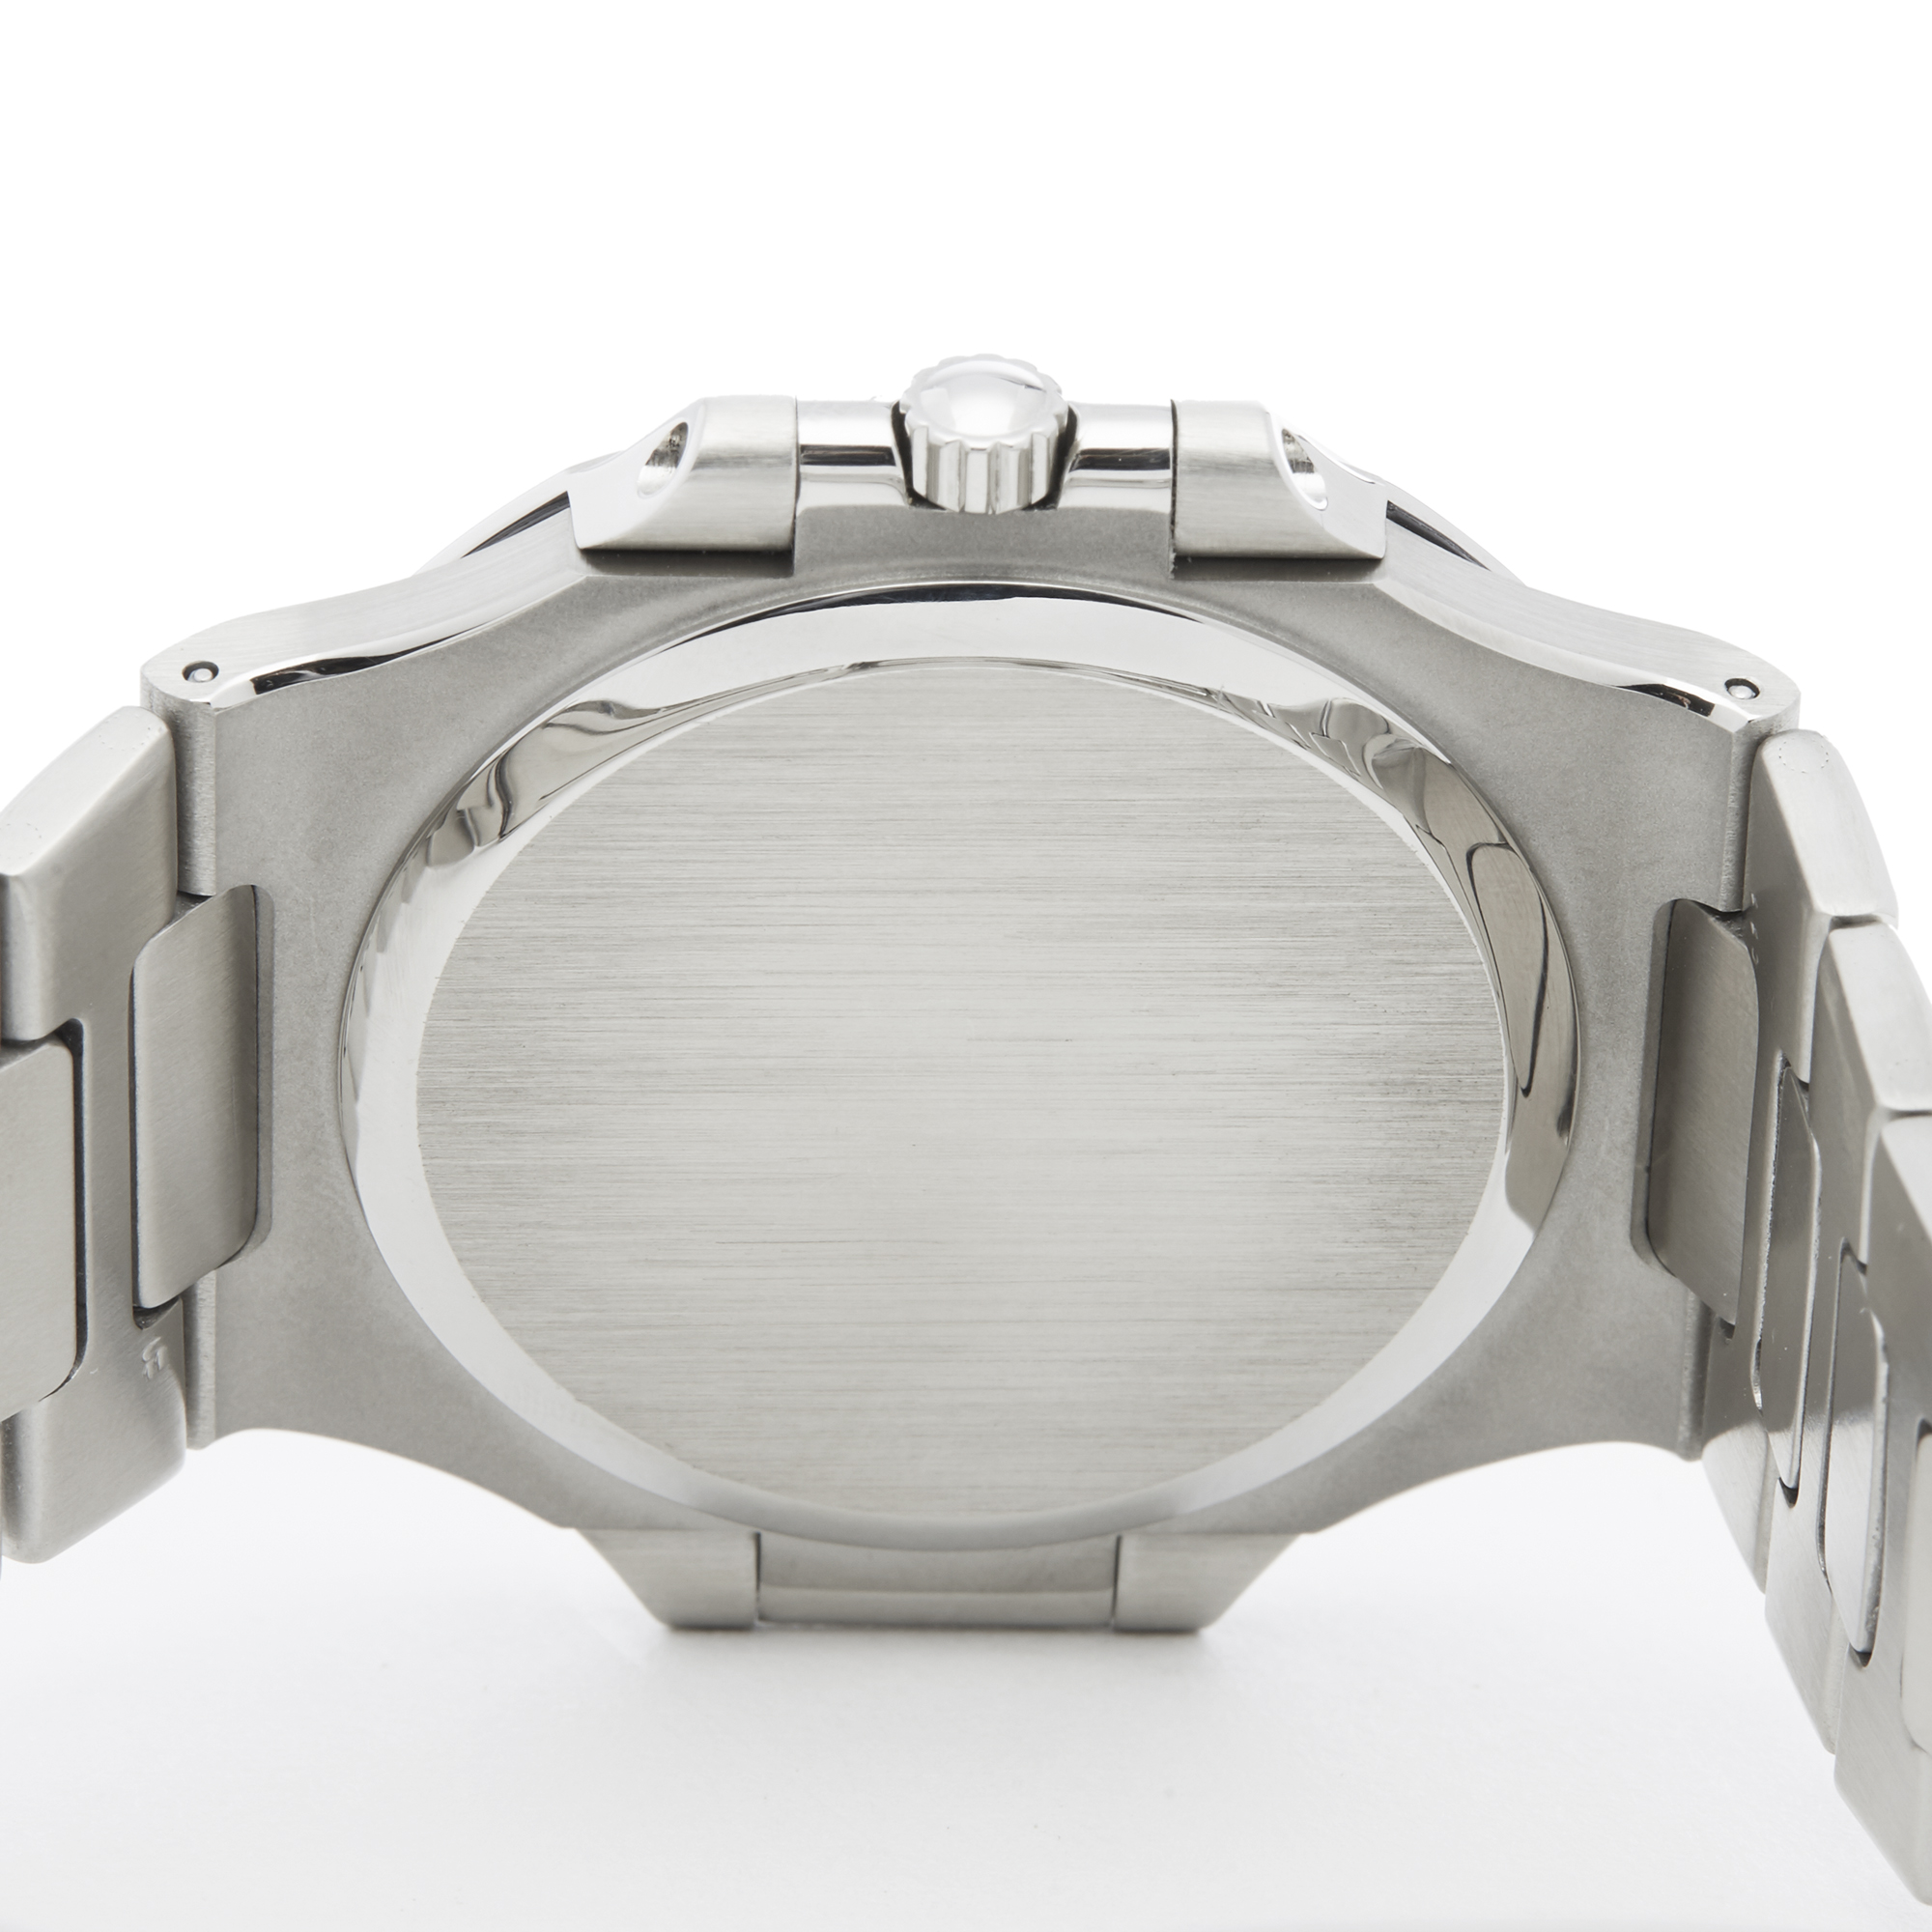 Lot 23 - Patek Philippe Nautilus Stainless Steel - 3700